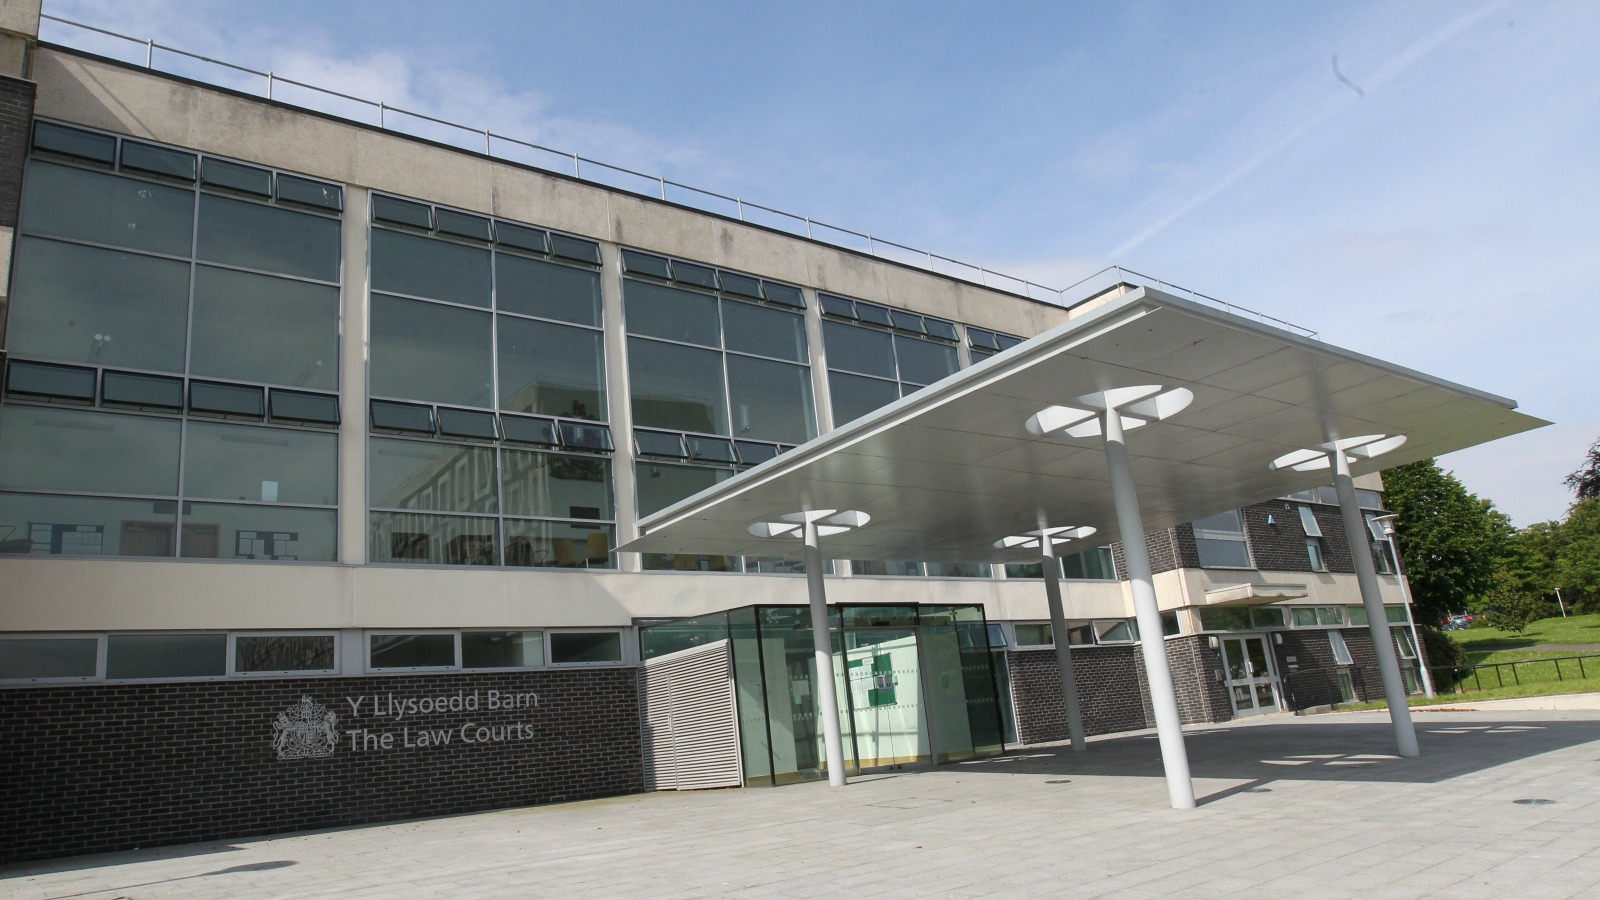 Suspended sentence for ex-supermarket worker from Wrexham who downloaded sexual images of children and animals